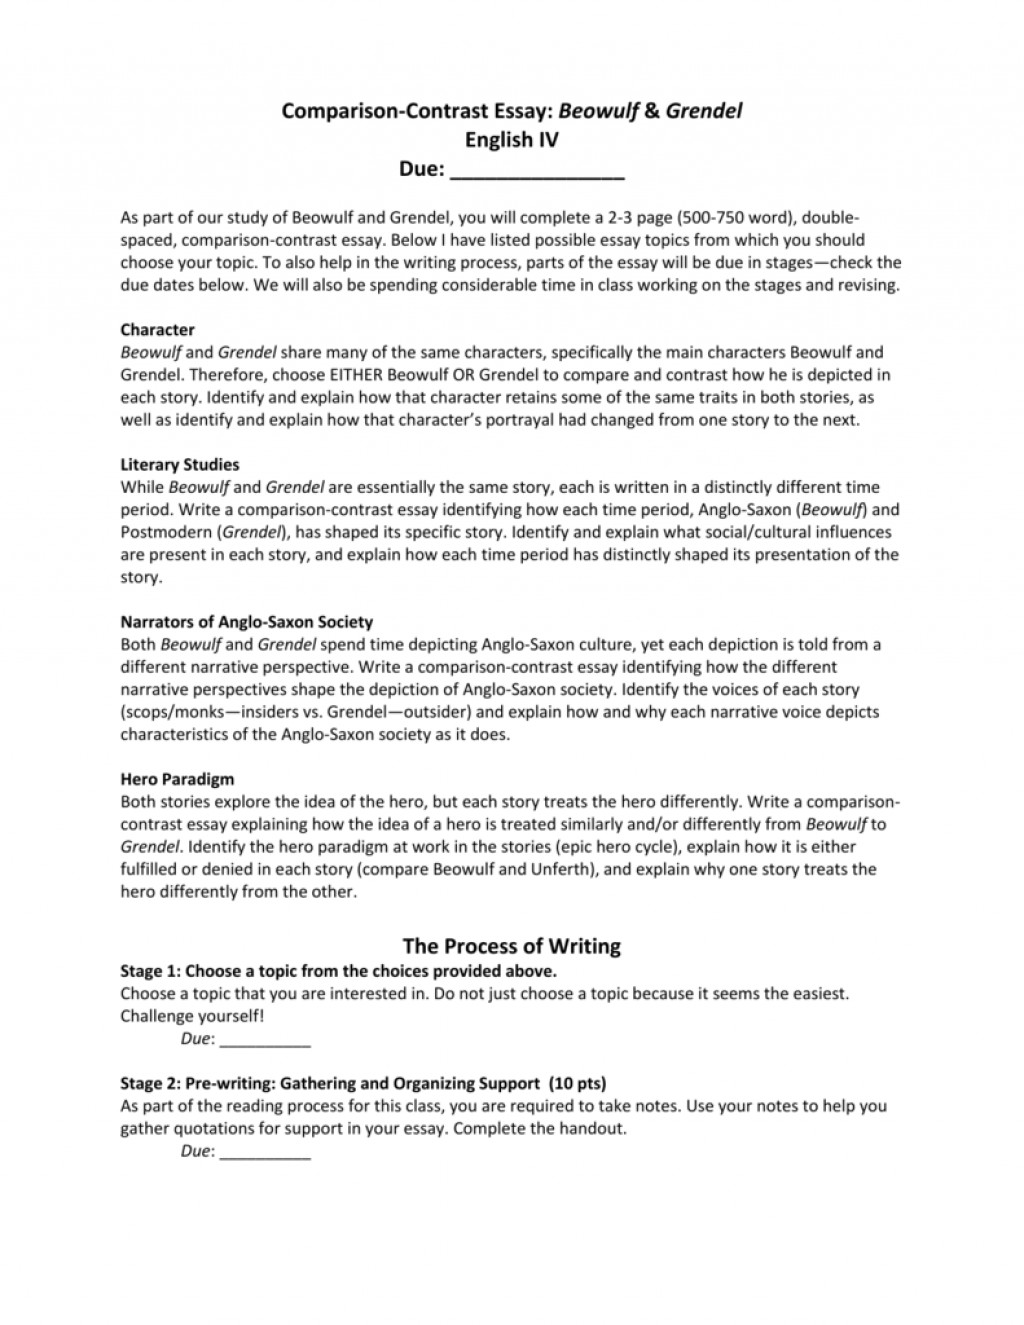 015 008061732 1 Essay Example Comparison And Awful Contrast Rubric Compare Template Word Large